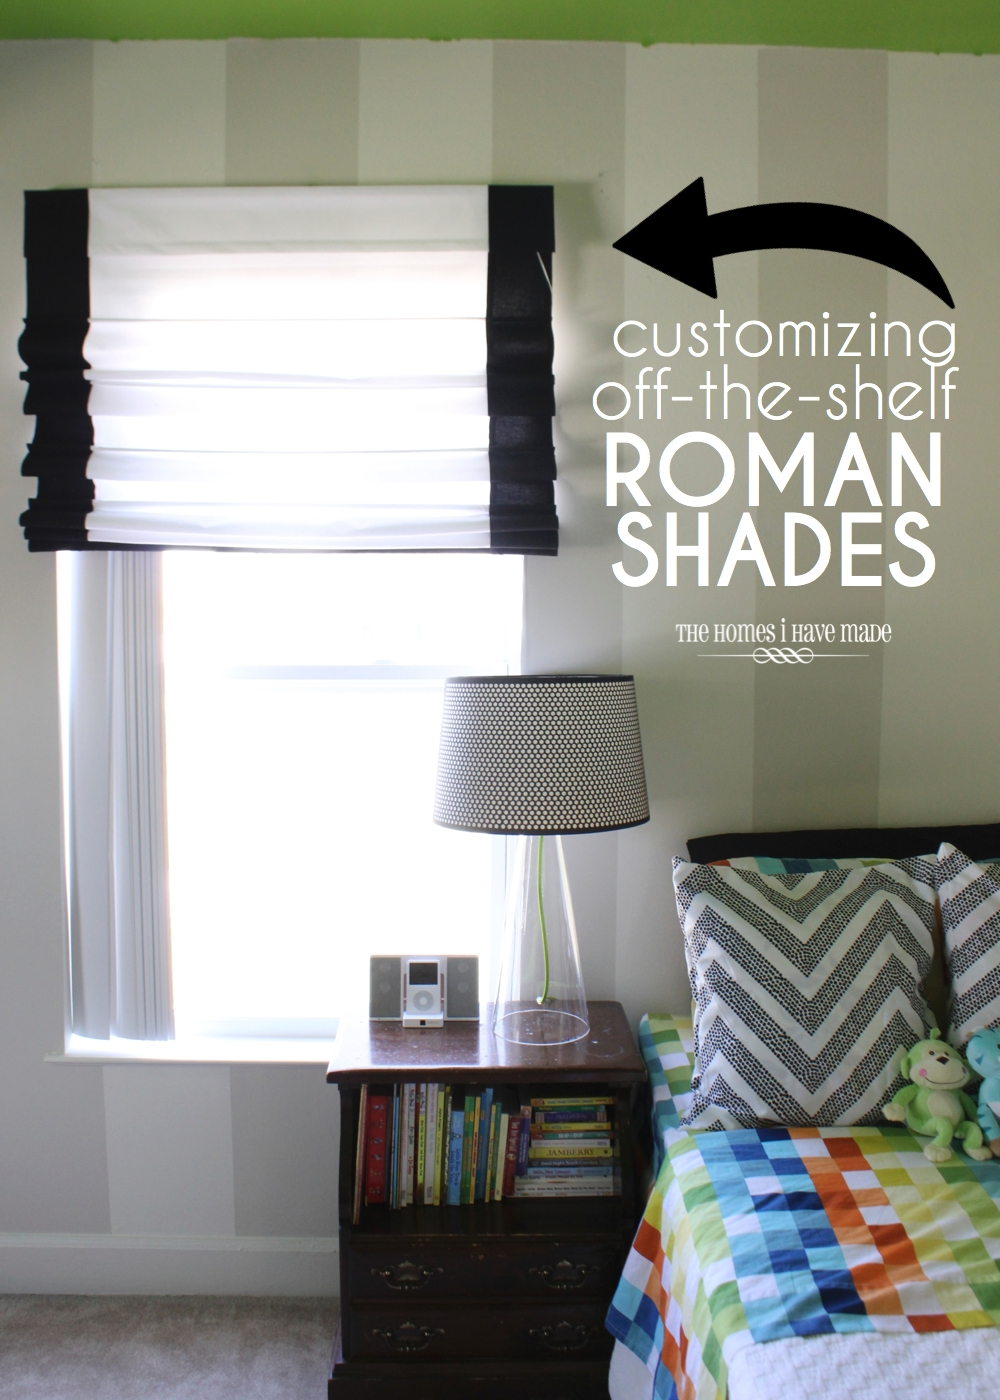 Diy Roman Shades Easy Customizing Off The Shelf Roman Shades The Homes I Have Made